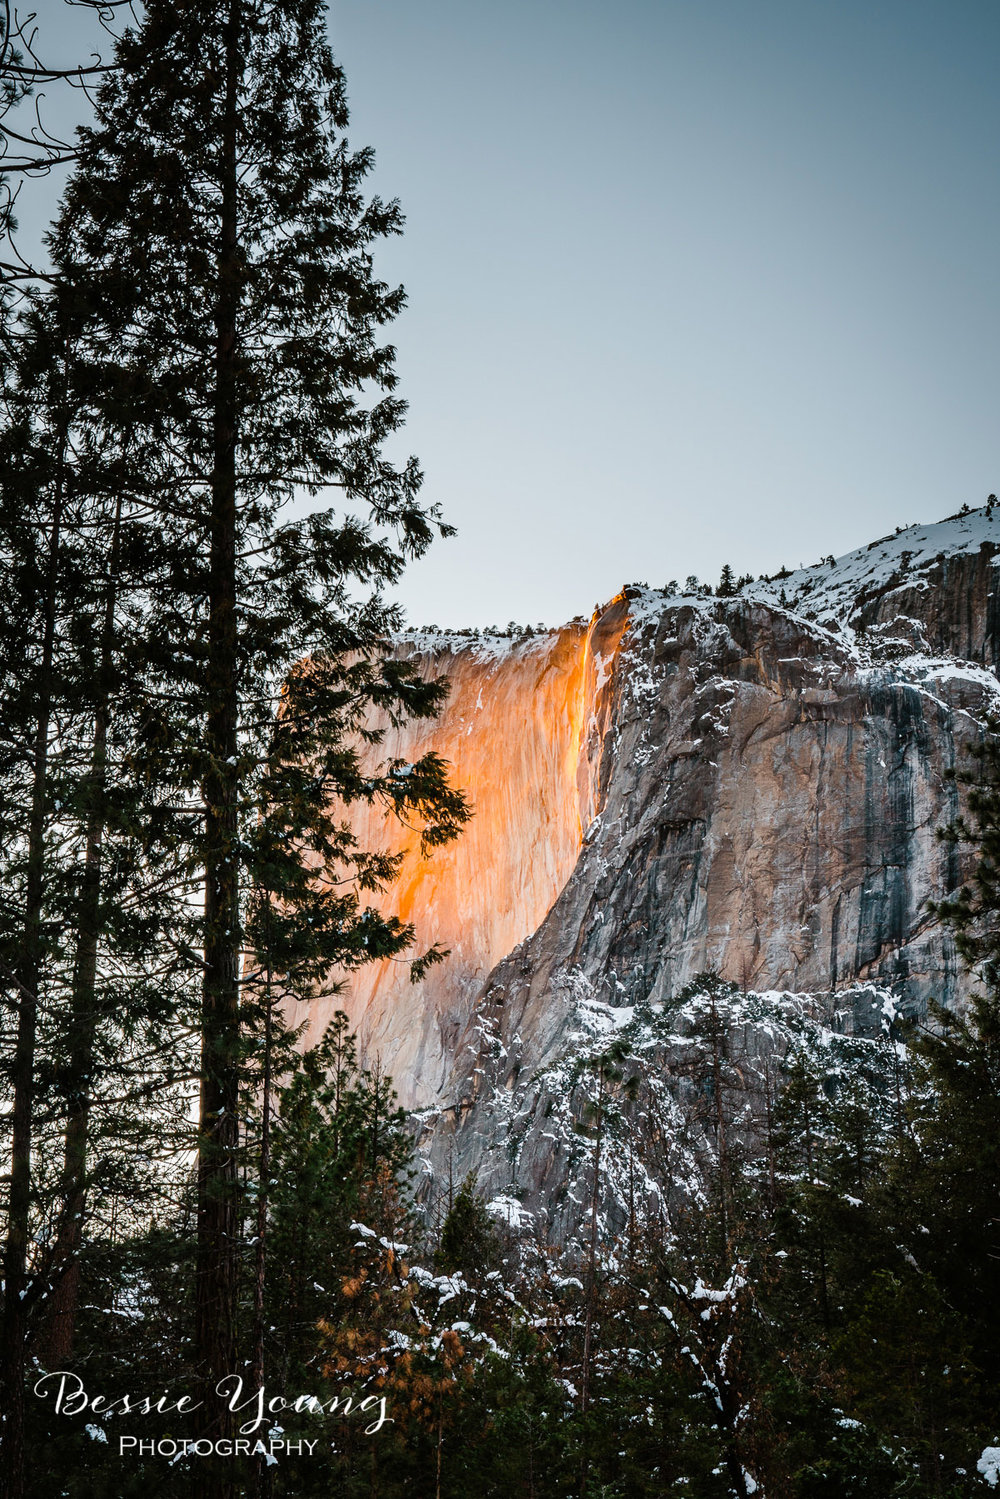 Yosemite National Park Firefall 2019 - Horsetail Fall - Landscape Photography by Bessie Young Photography - Yosemite National Park Photography